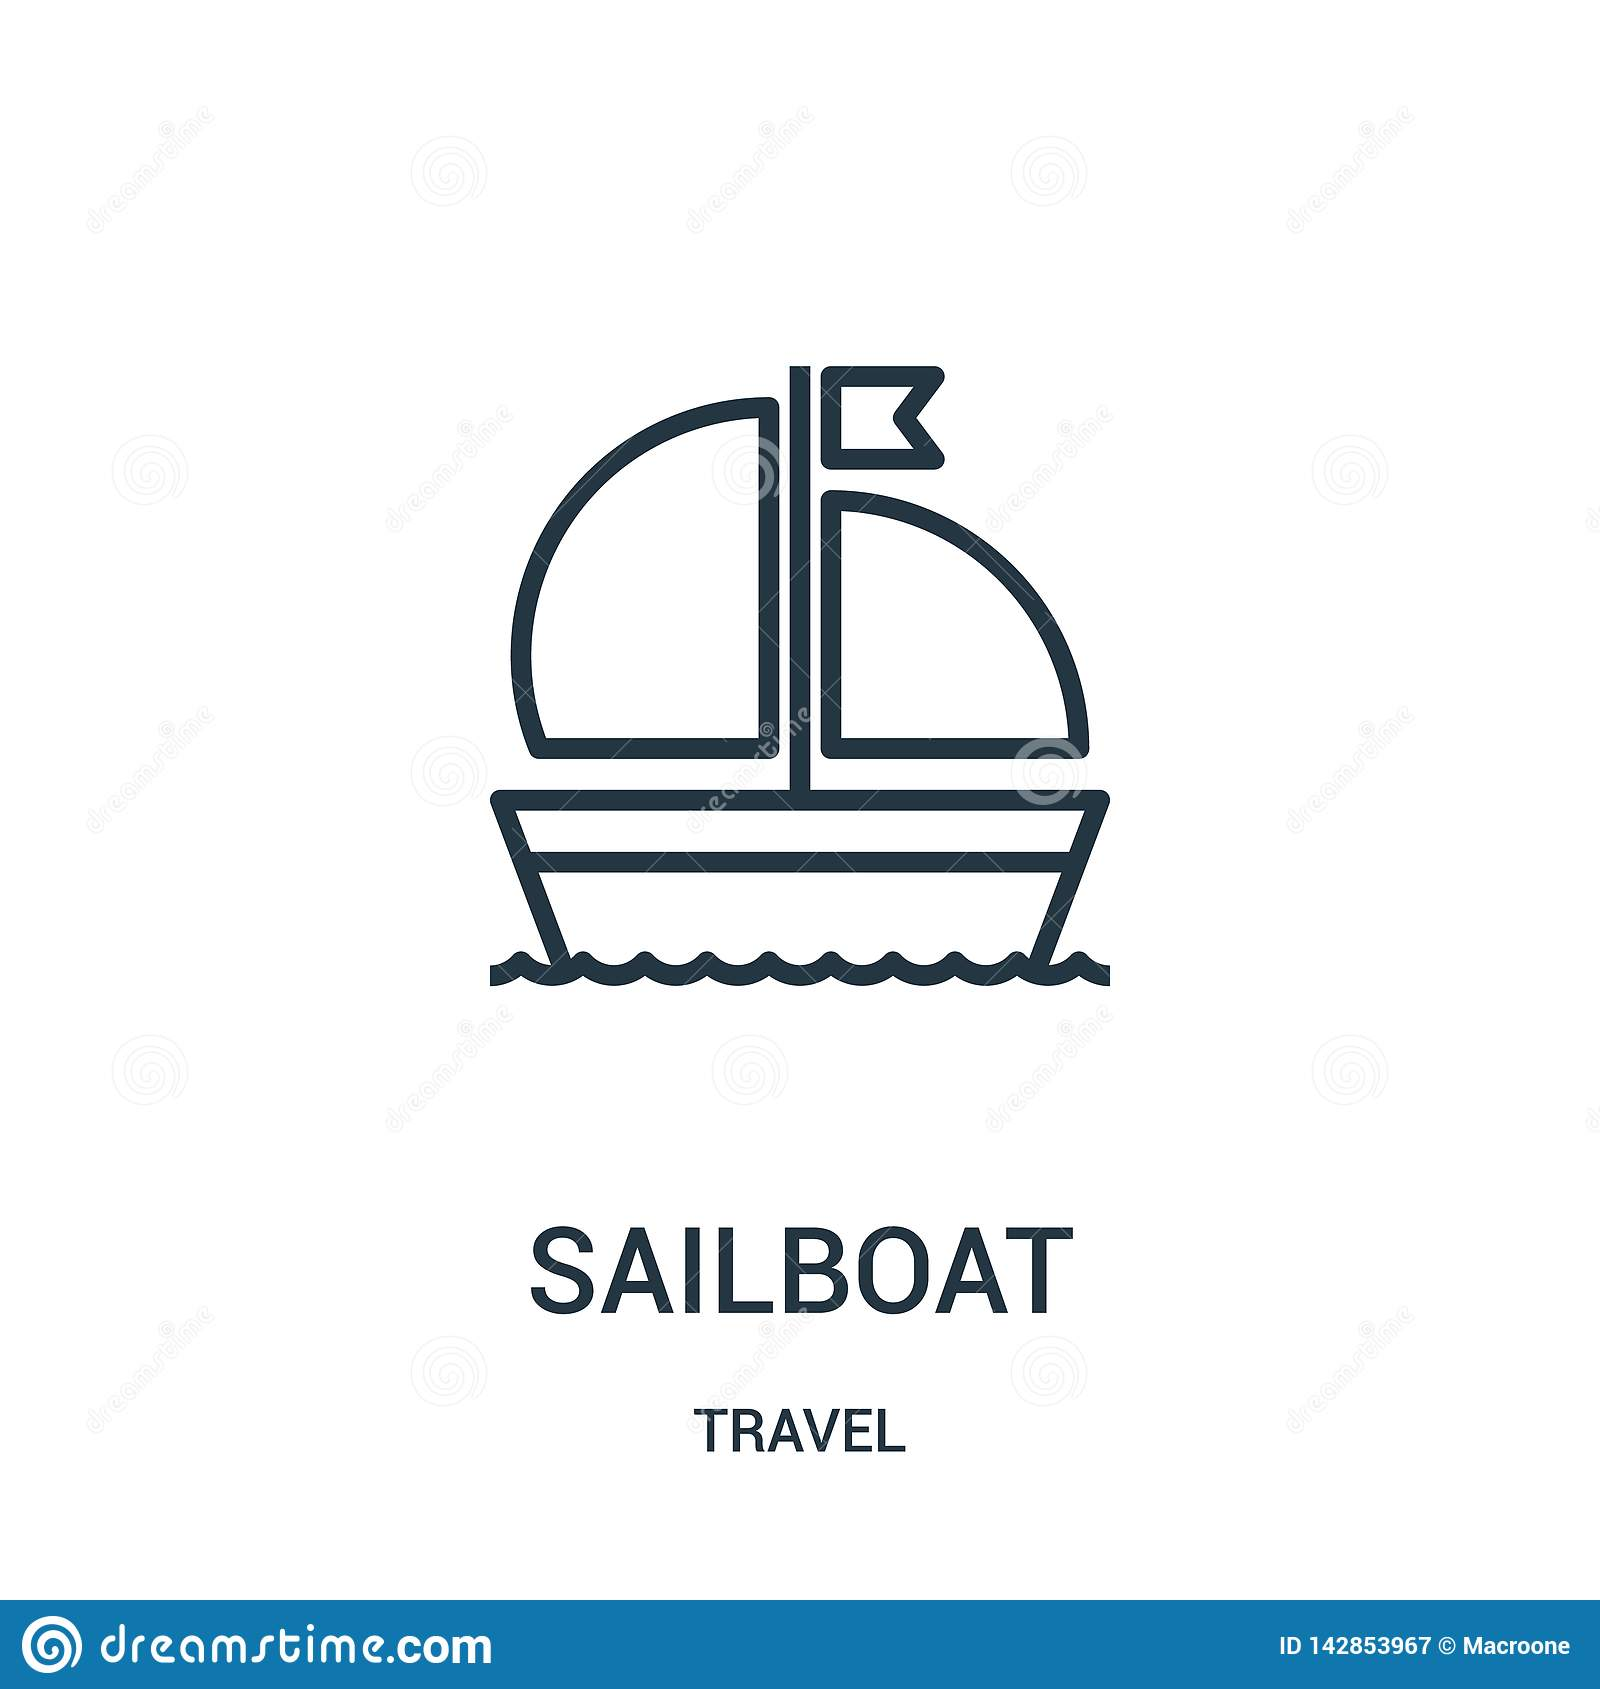 sailboat icon vector from travel collection. Thin line sailboat outline icon vector illustration. Linear symbol for use on web and